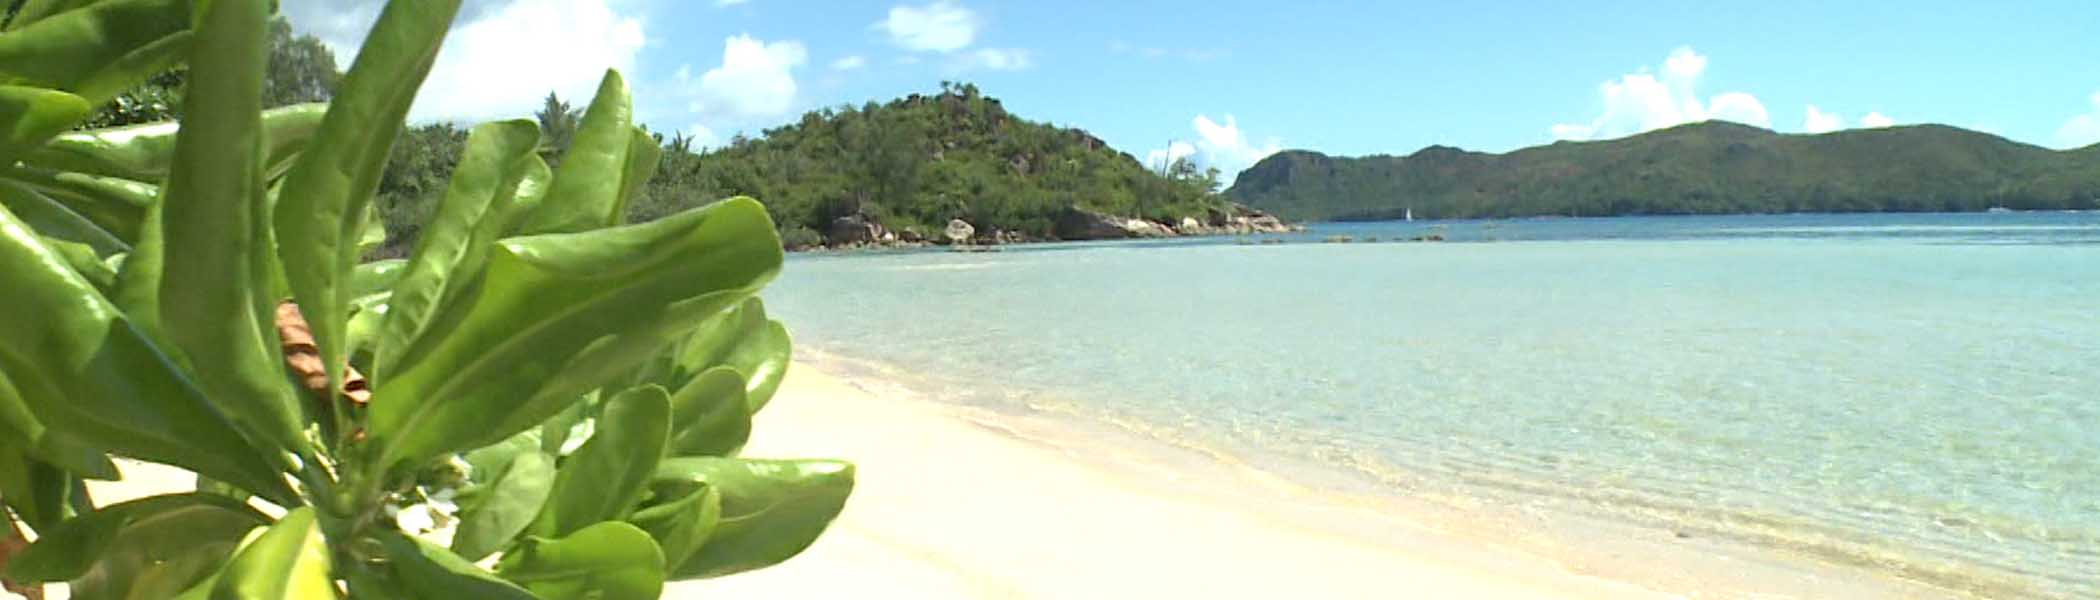 anse-possession, Beaches in Seychelles Islands